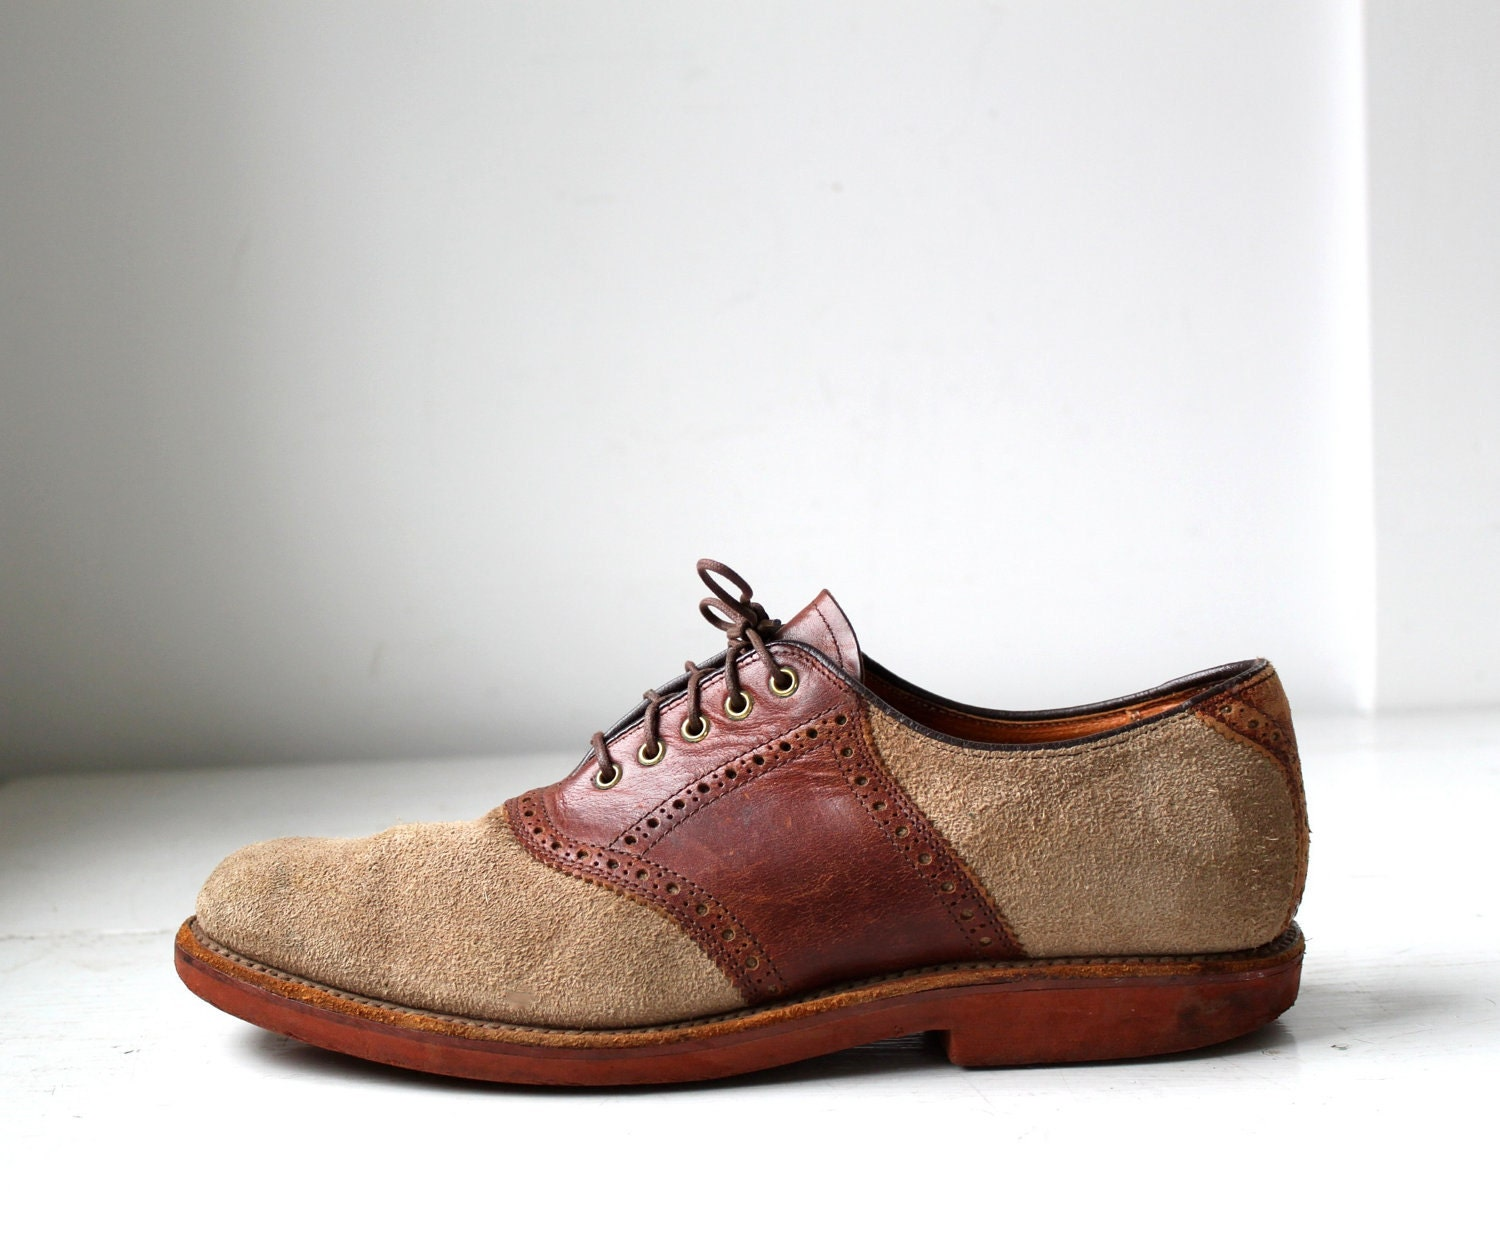 Vintage Saddle Suede Oxfords. Two Tone Tan And Brown Red